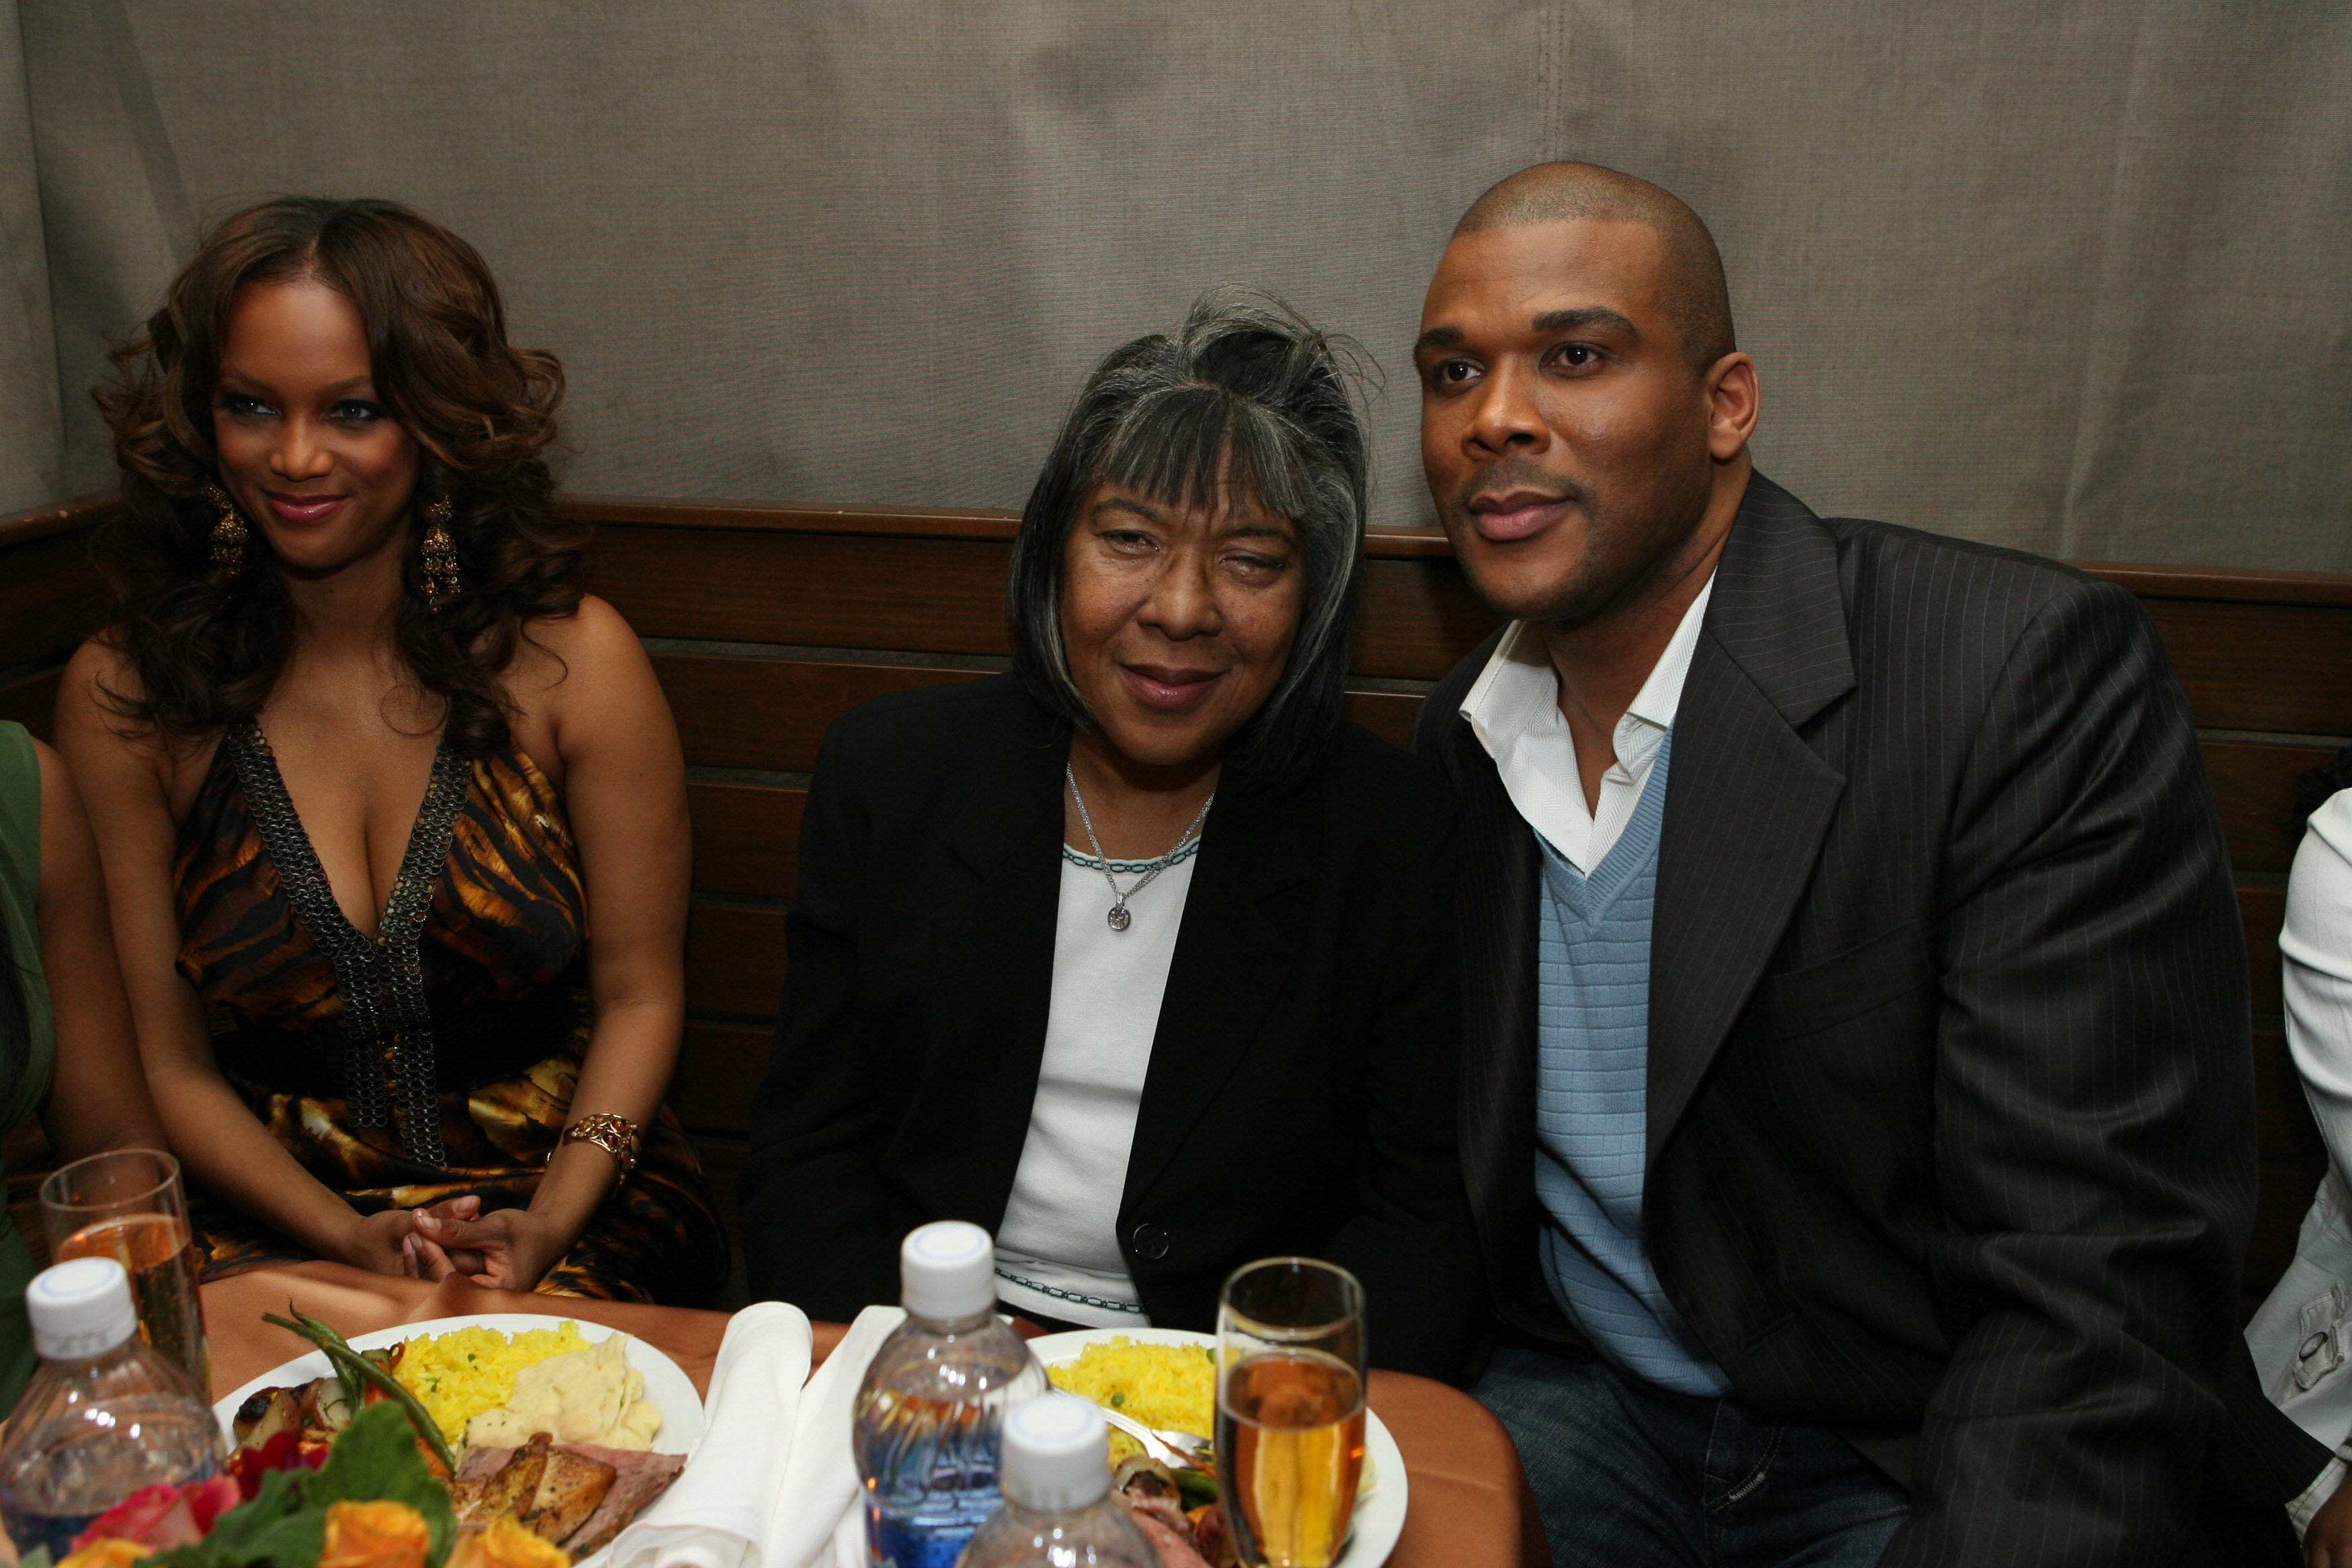 """Tyra Banks, Maxine Perry, and Tyler Perry at the premiere of Lionsgate's """"Madea's Family Reunion"""" on February 21, 2006, Los Angeles, California   Photo: Getty Images"""